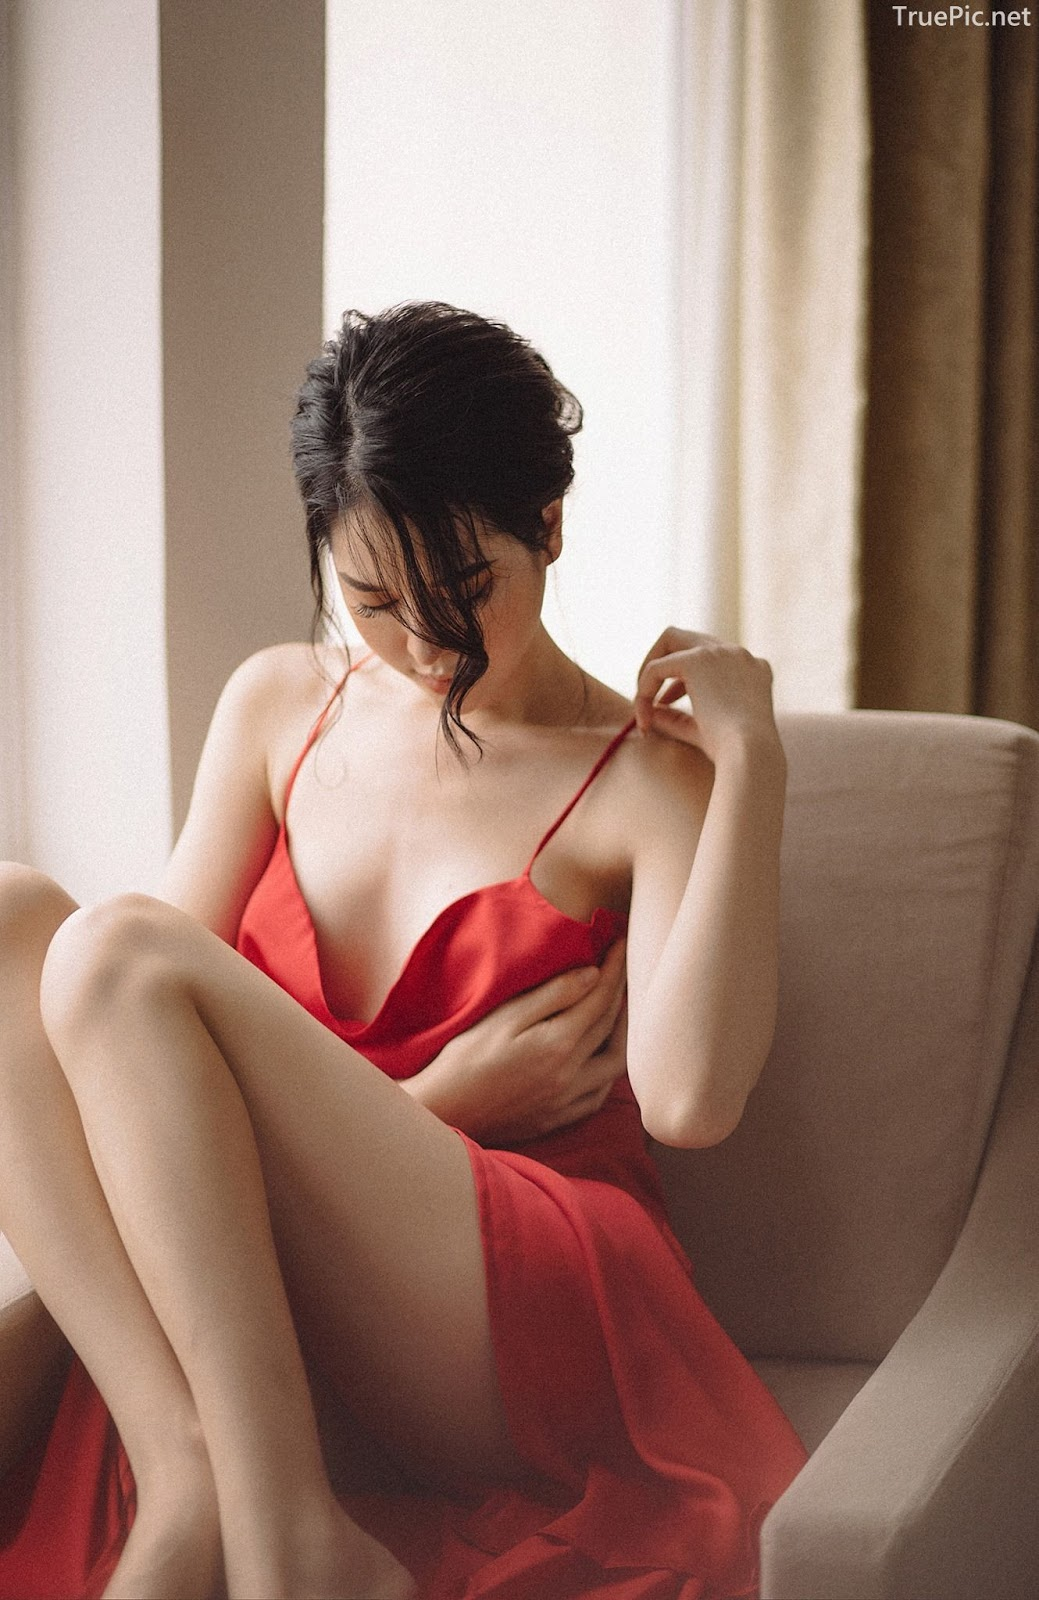 Vietnamese hot model - The beauty of Women with Red Camisole Dress - Photo by Linh Phan - Picture 7